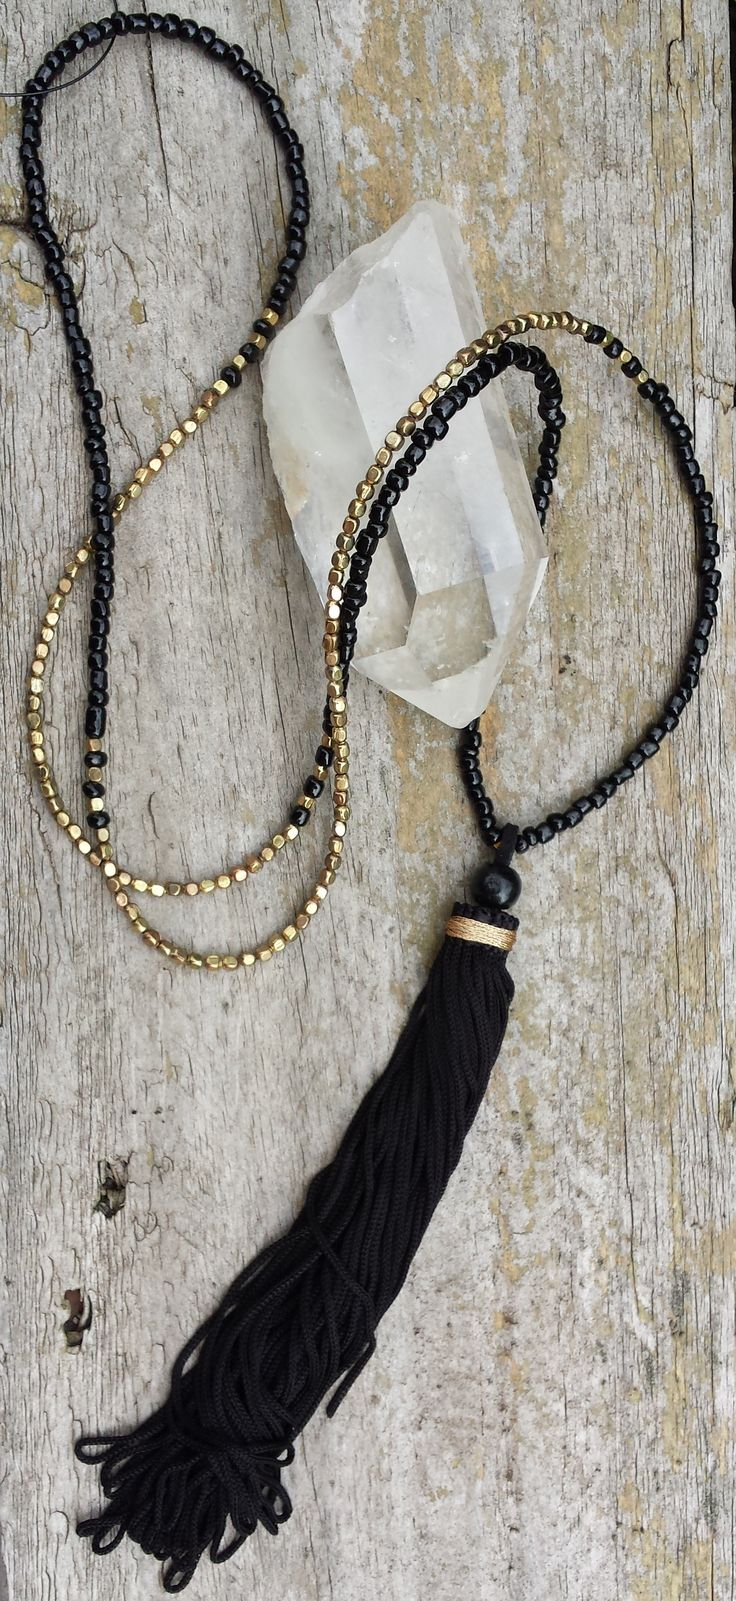 ^Long tassel necklace from my shop on facebook.com/RoieDesigns